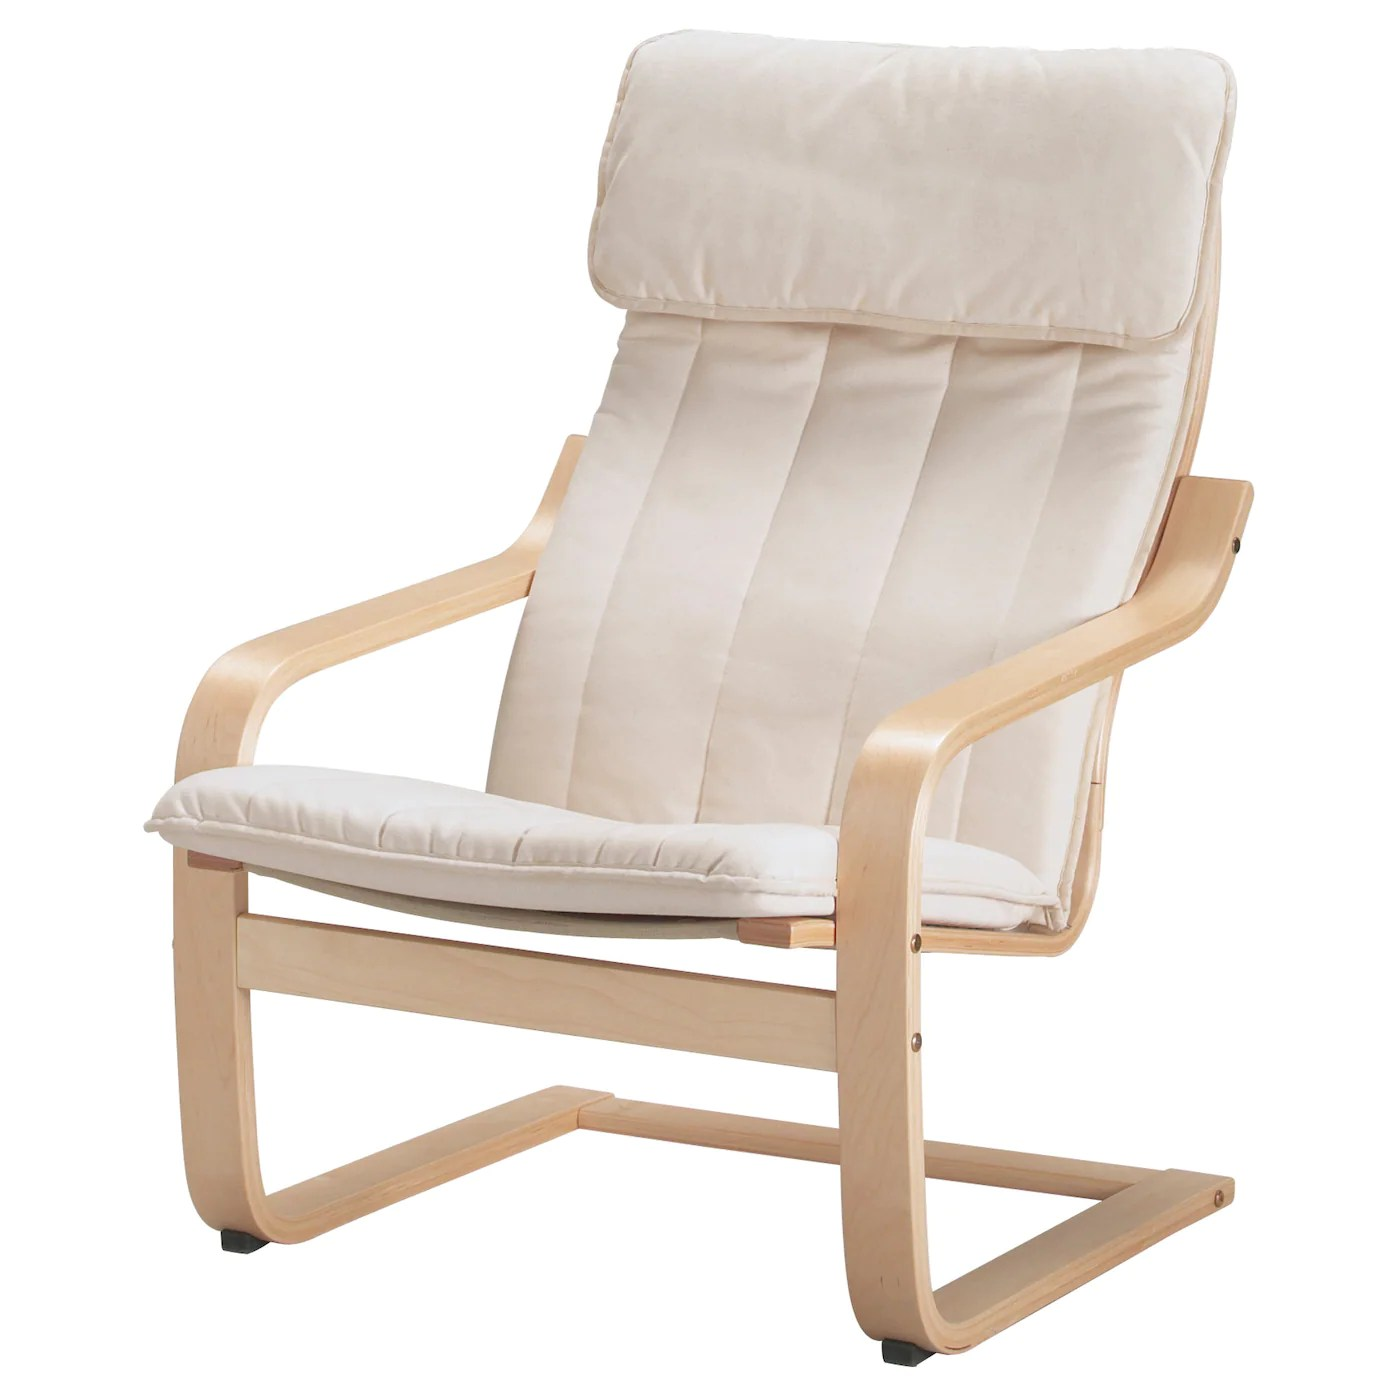 ikea arm chairs deer antler chair poÄng armchair birch veneer ransta natural